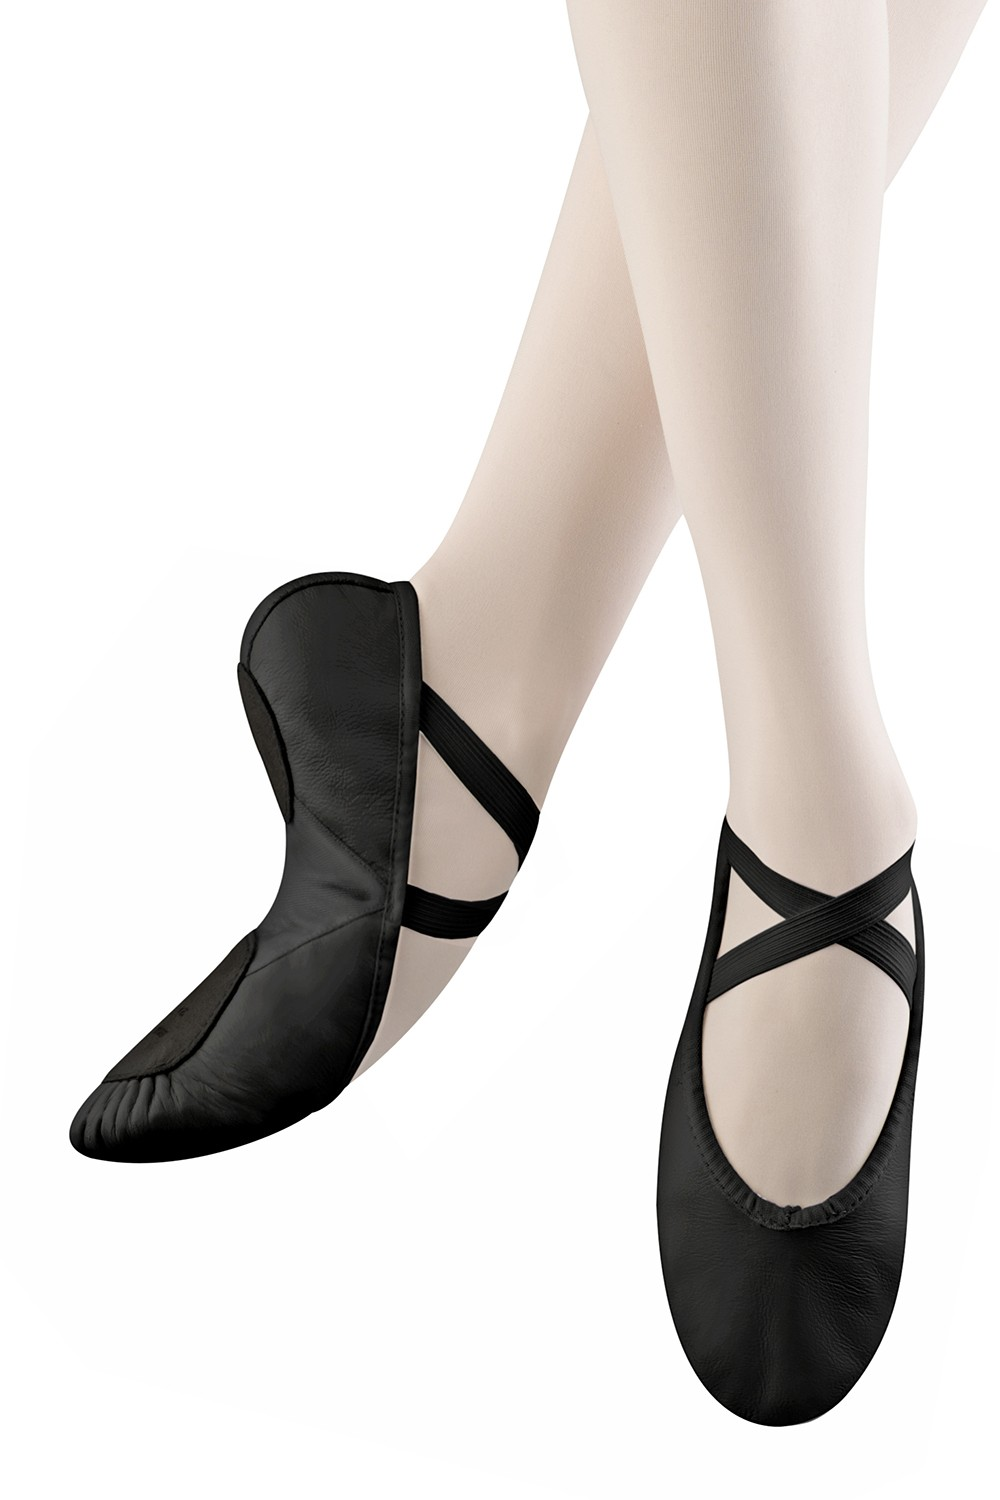 Men's Ballet Shoes